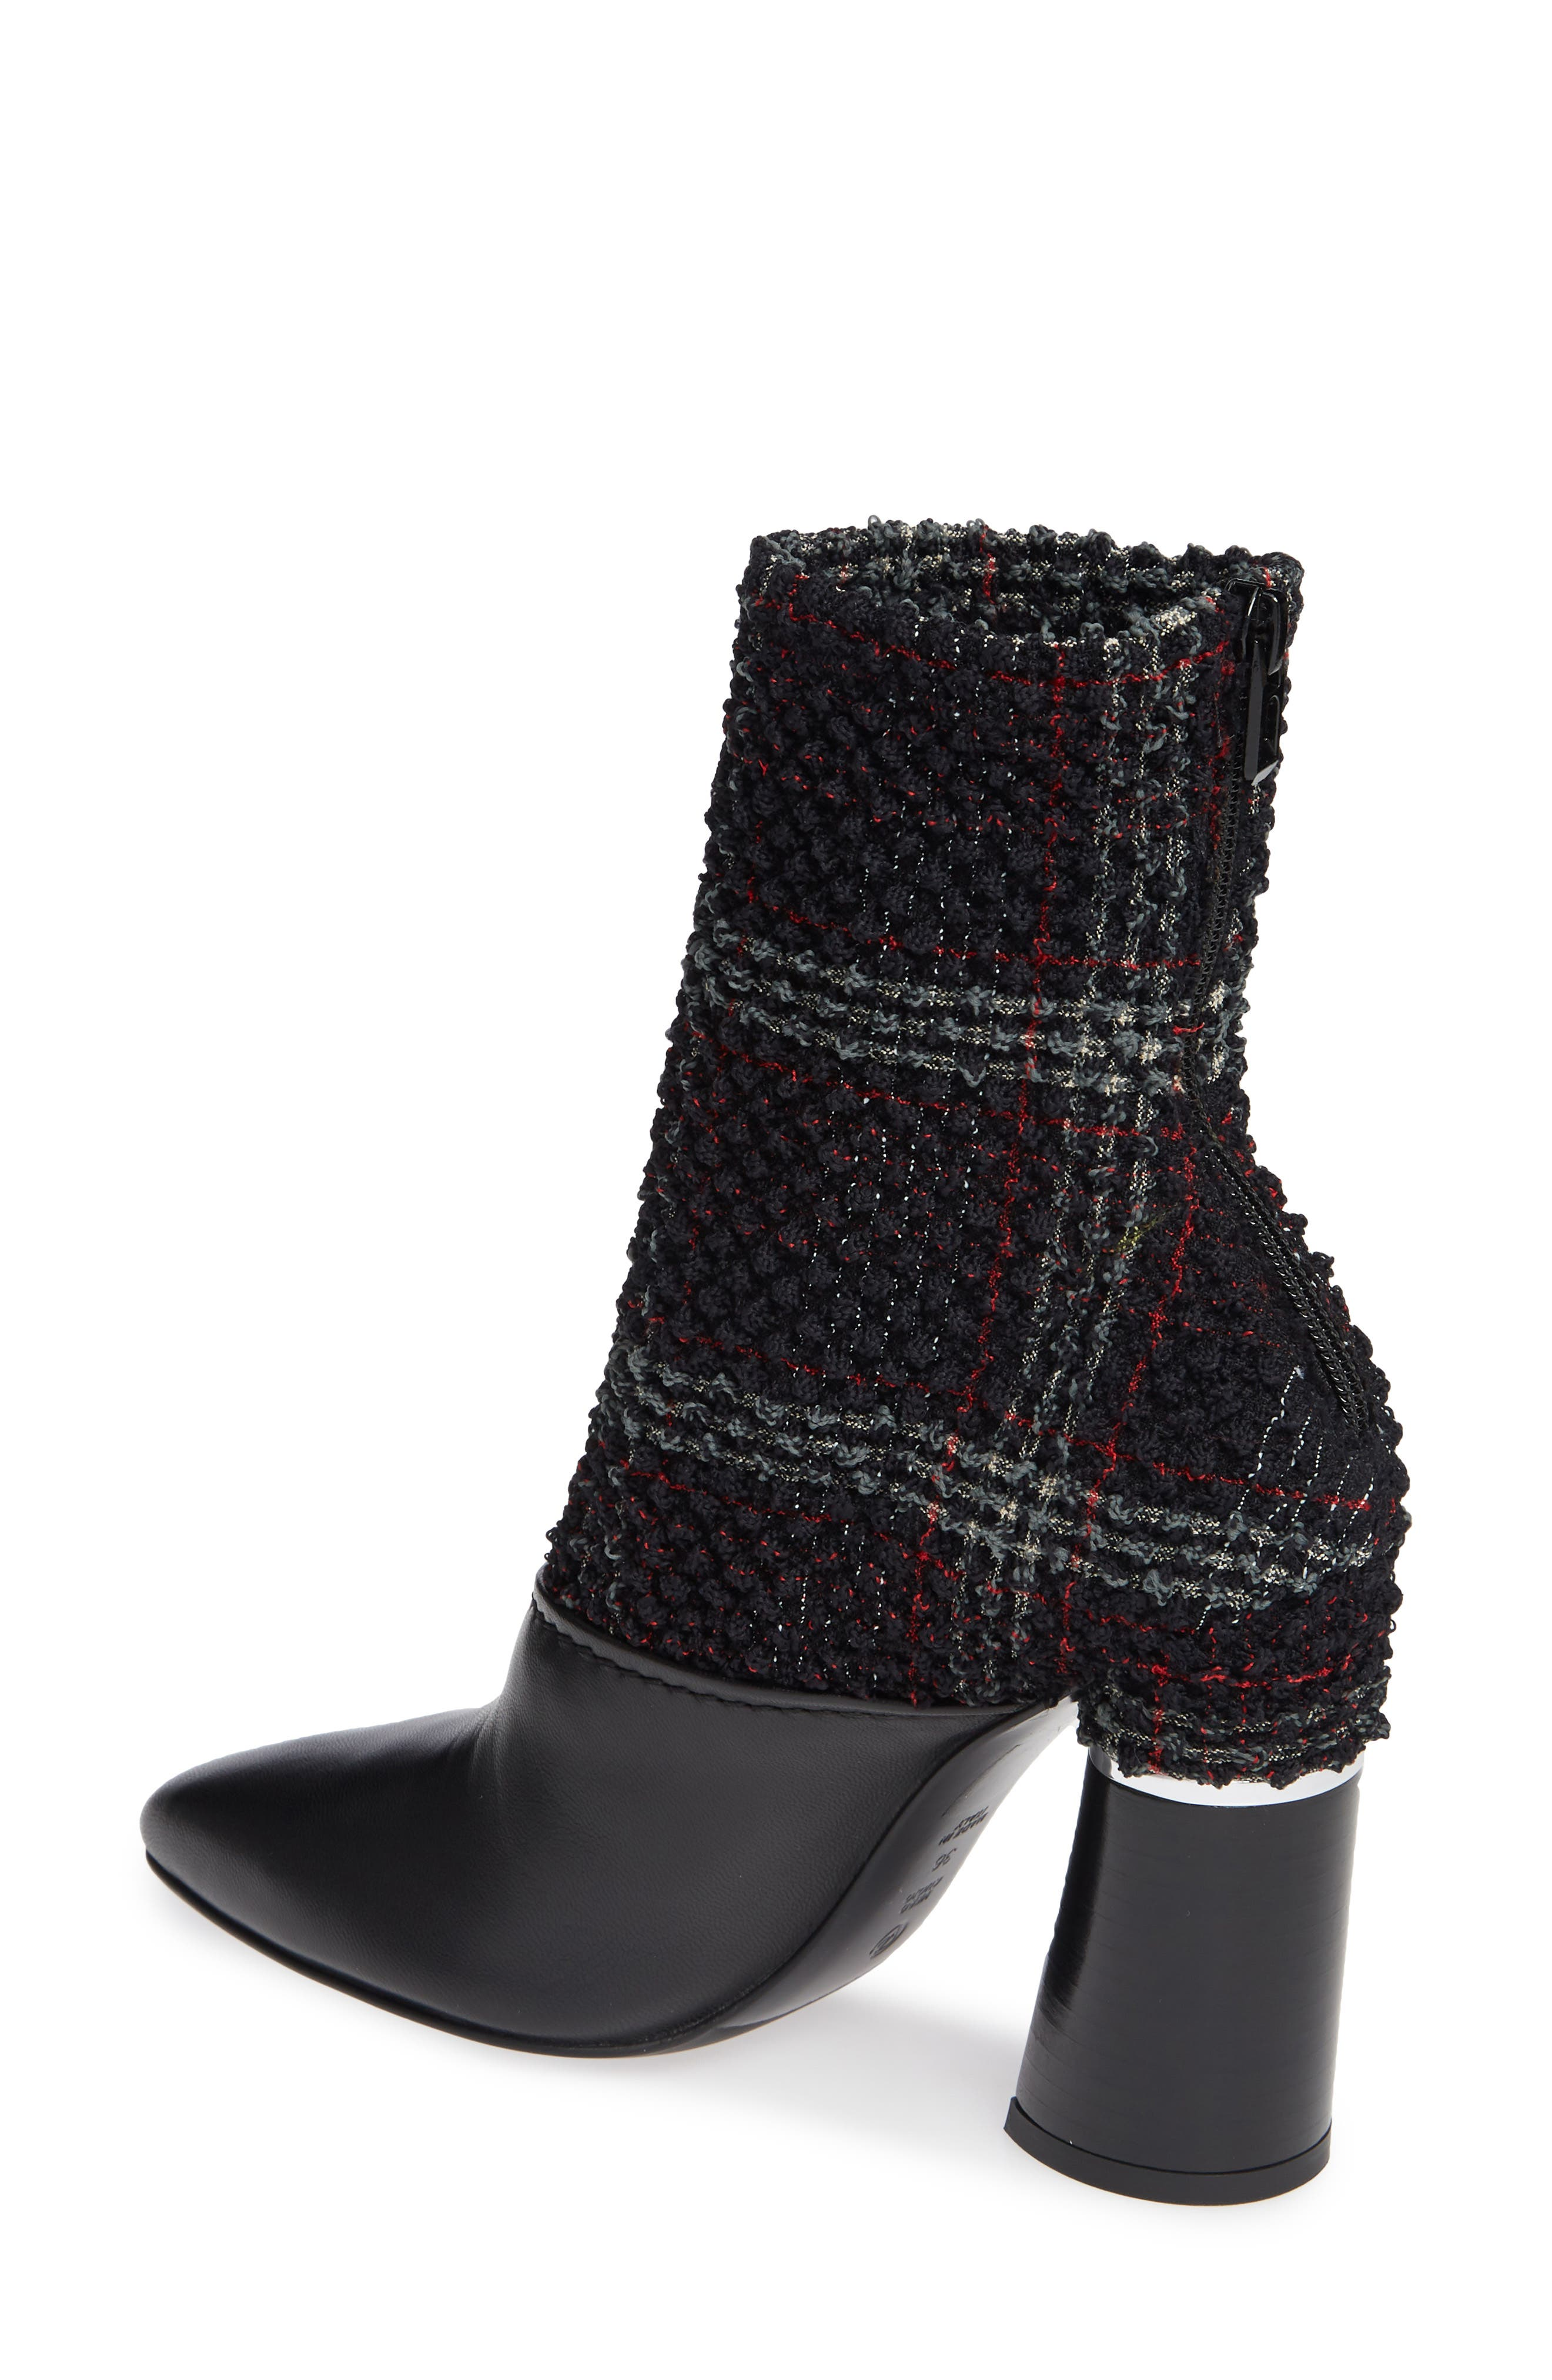 Kyoto Leather Bootie,                             Alternate thumbnail 2, color,                             BLACK/ GREEN/ RED CHECK